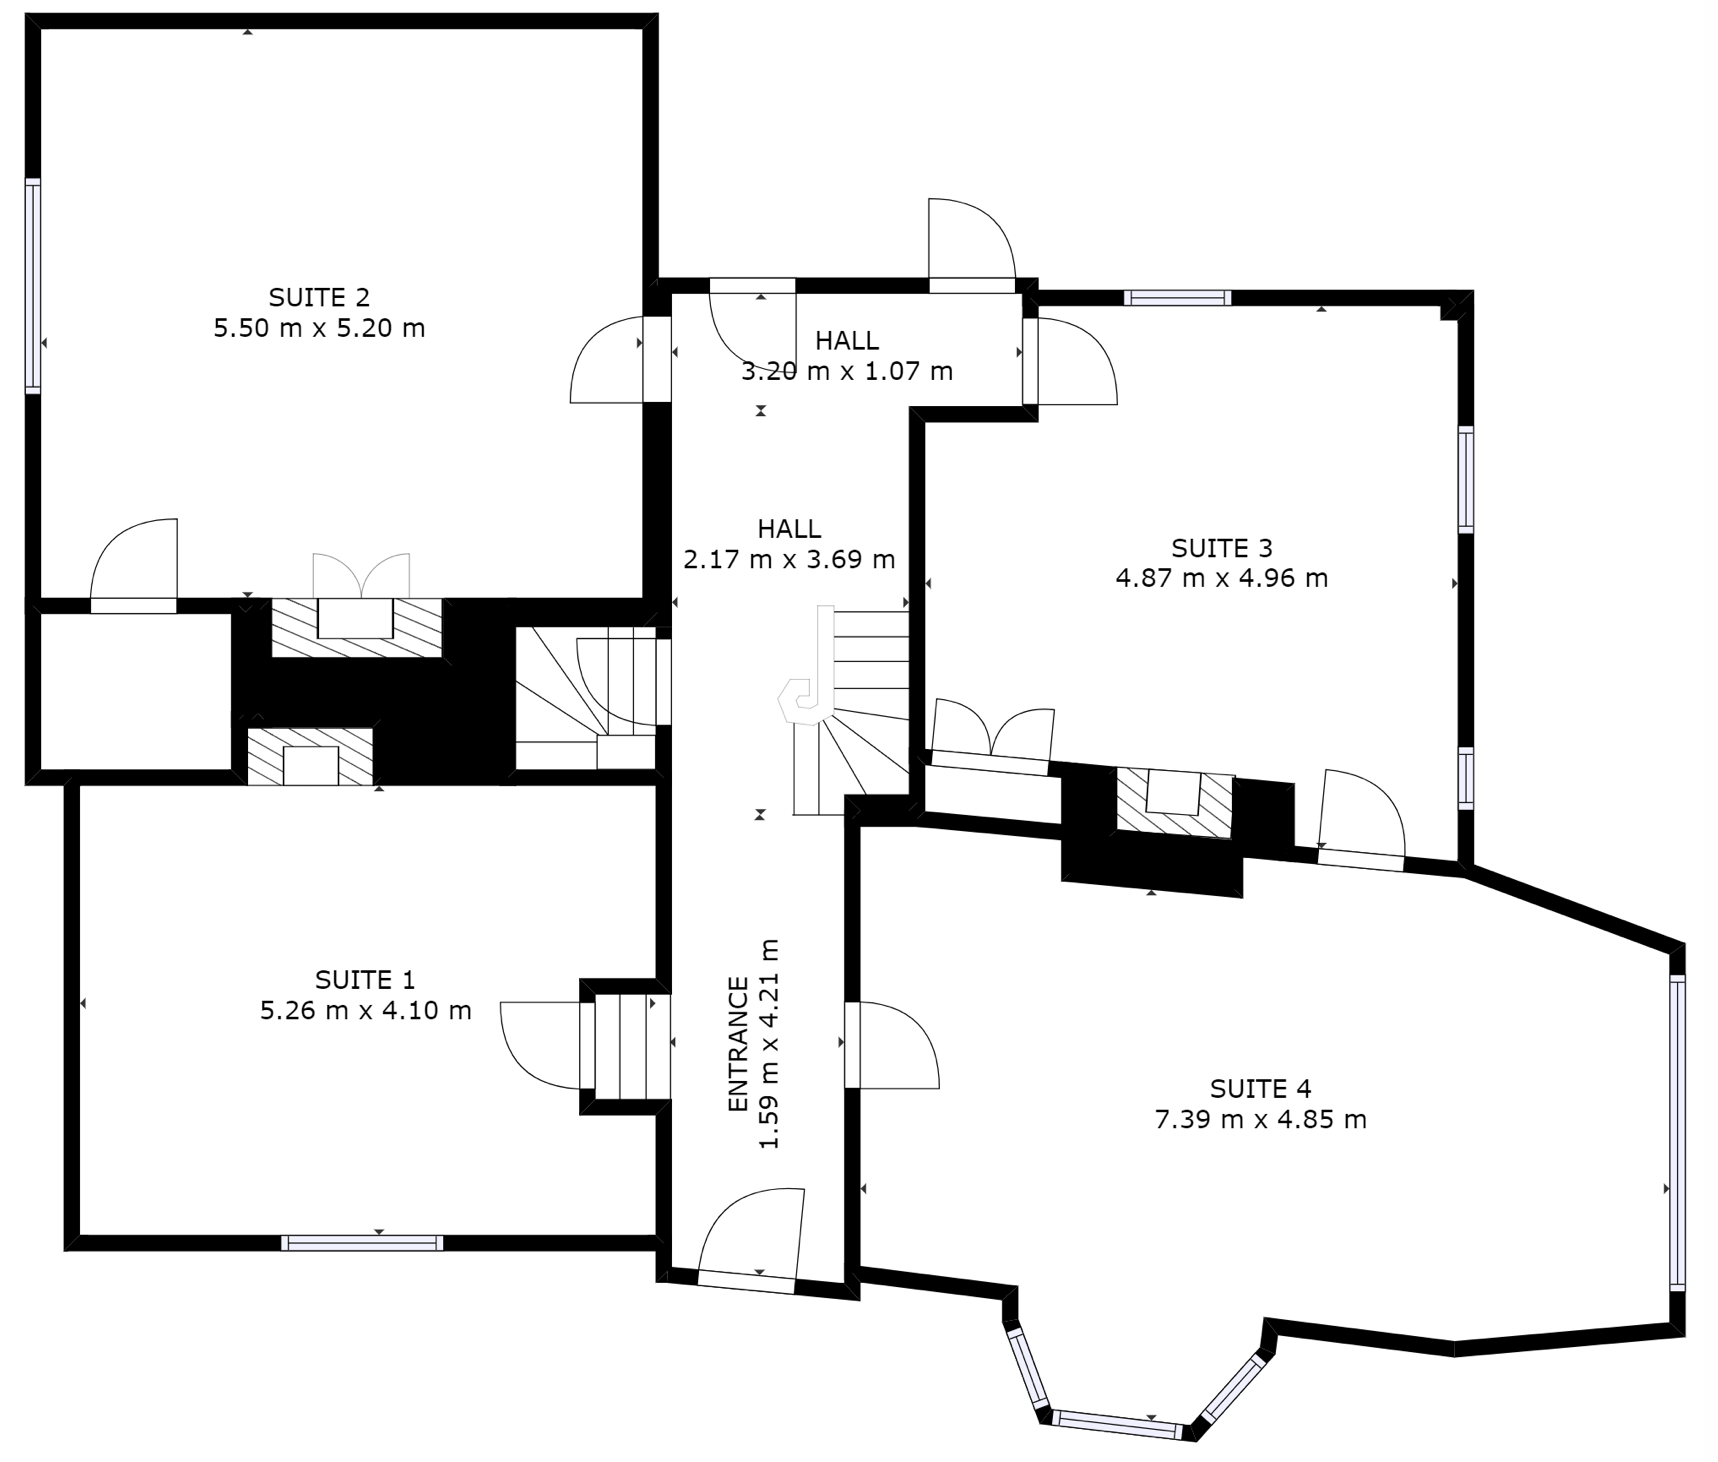 Ground floor layout and offices in Hemel Hempstead at Three Gables business centre.